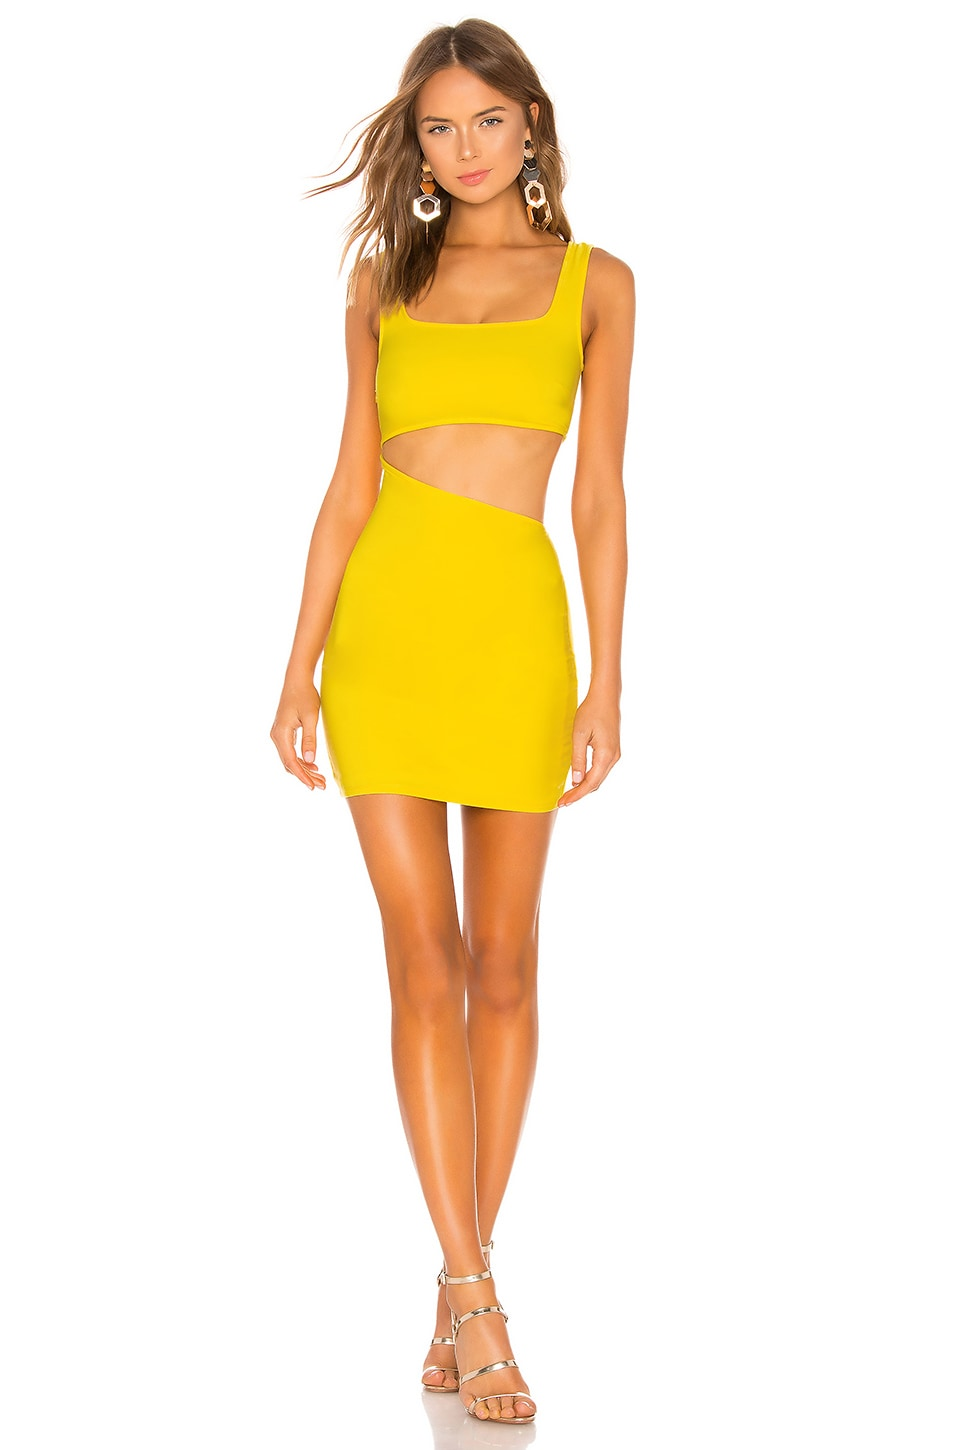 h:ours Tarantino Dress in Yellow